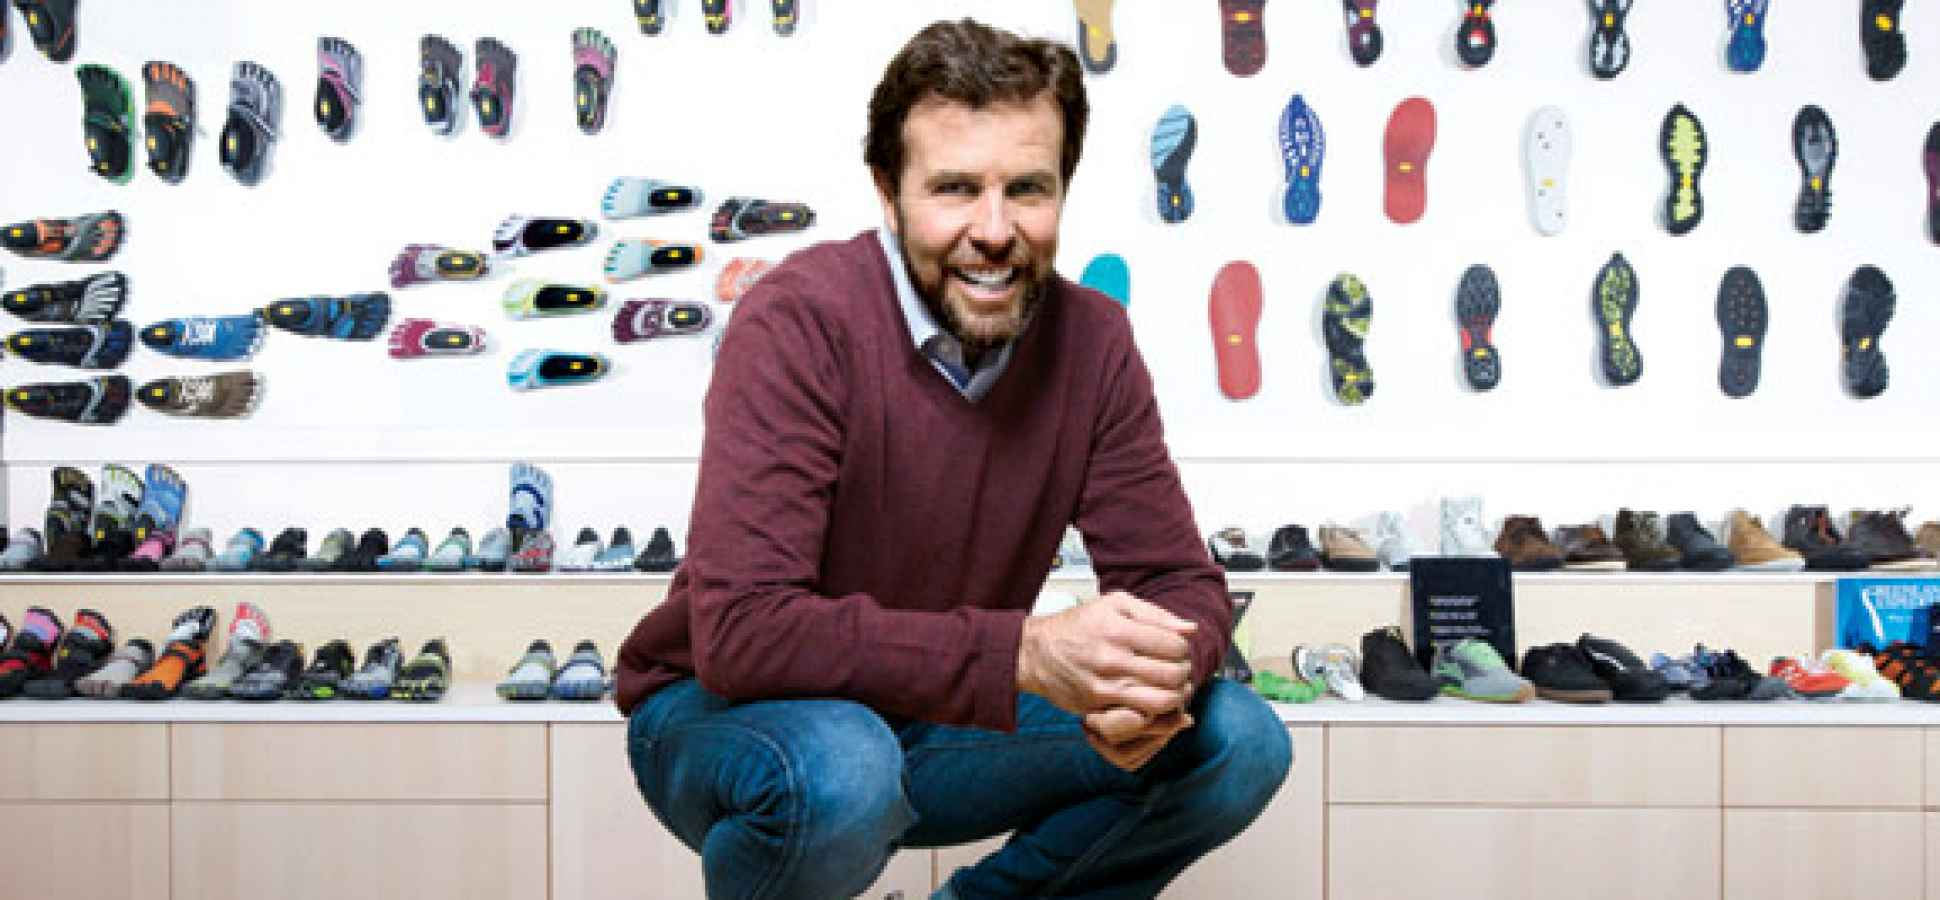 The Real Thing Tony Post Was Inundated By Fake Fivefingers